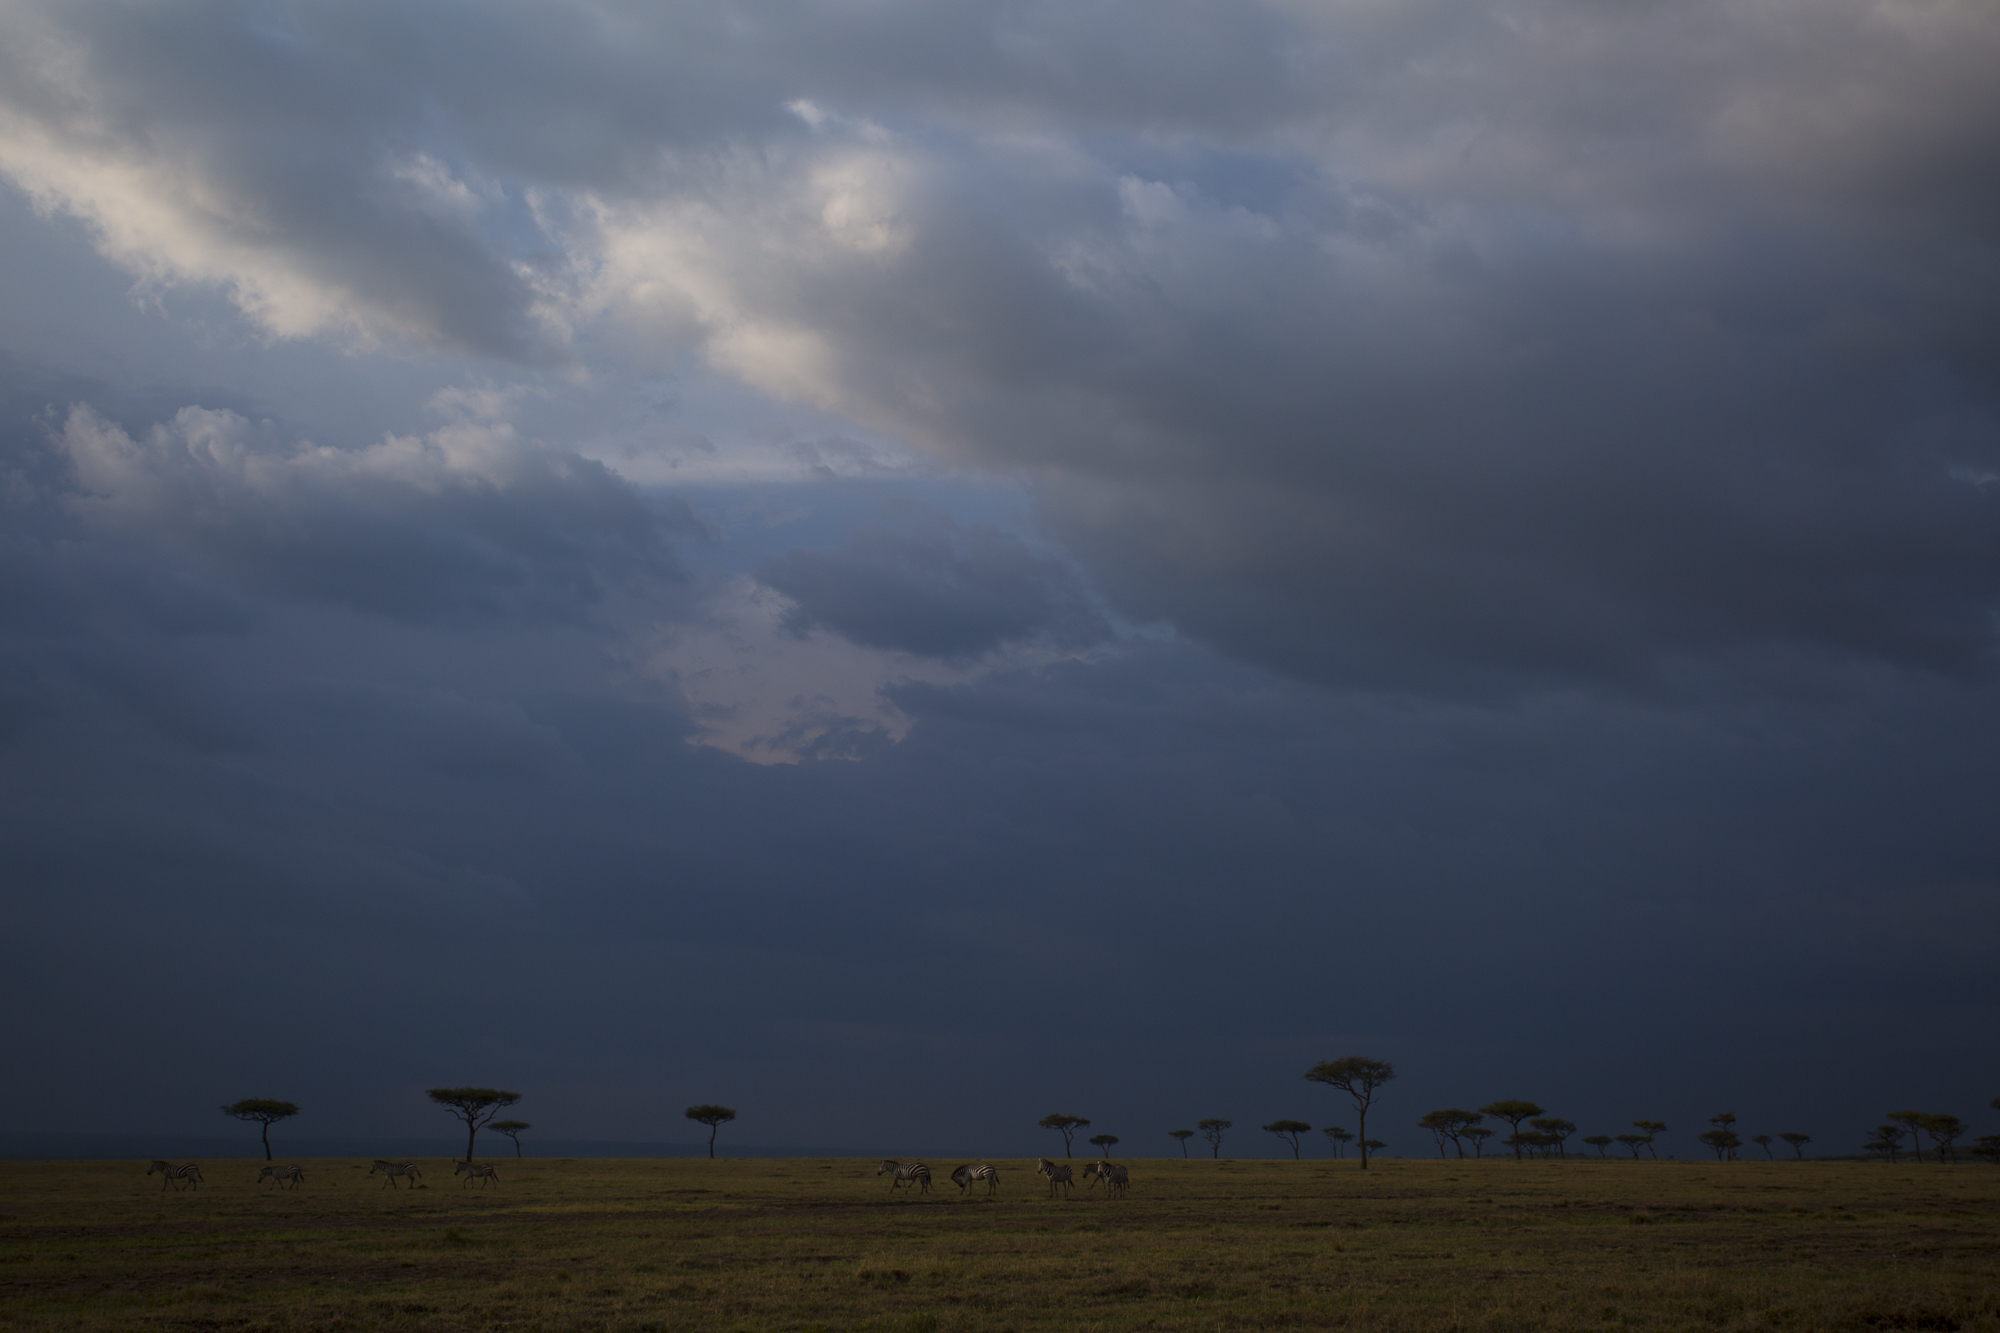 A view of the last rays of sunlight over Maasai Mara National Reserve in Kenya.